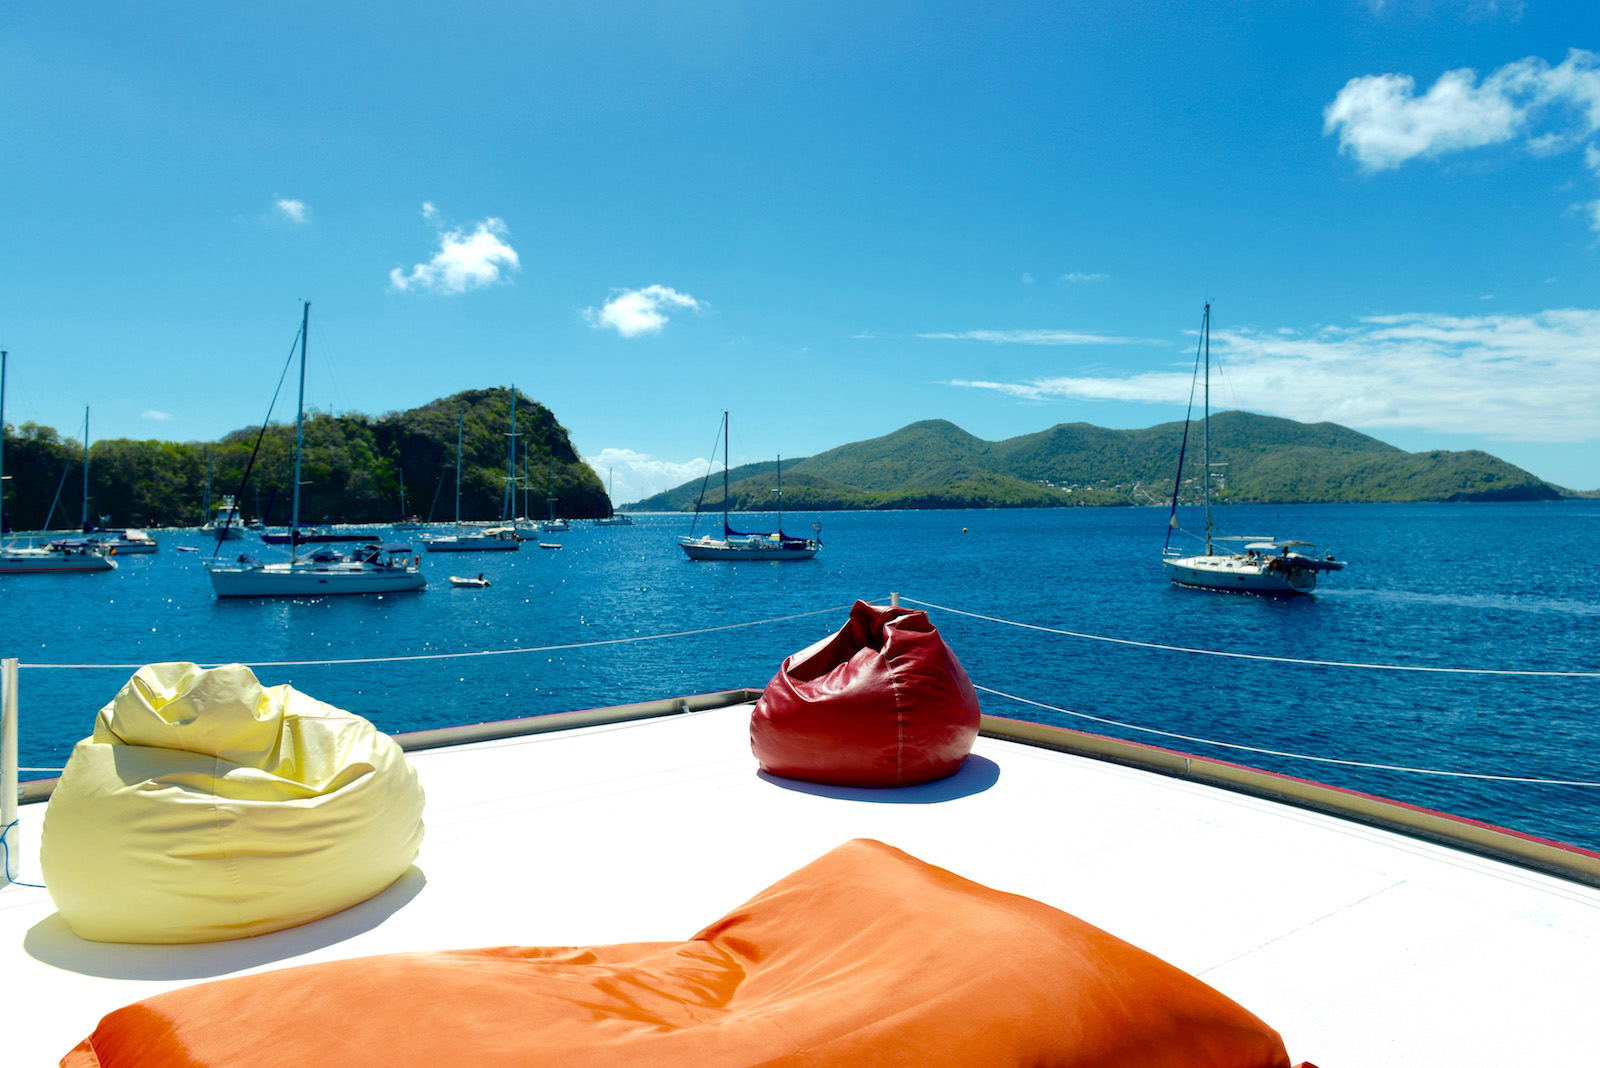 http://www.deshotelsetdesiles.com/hotel-vol-guadeloupe/photos/_DIG1606.jpg